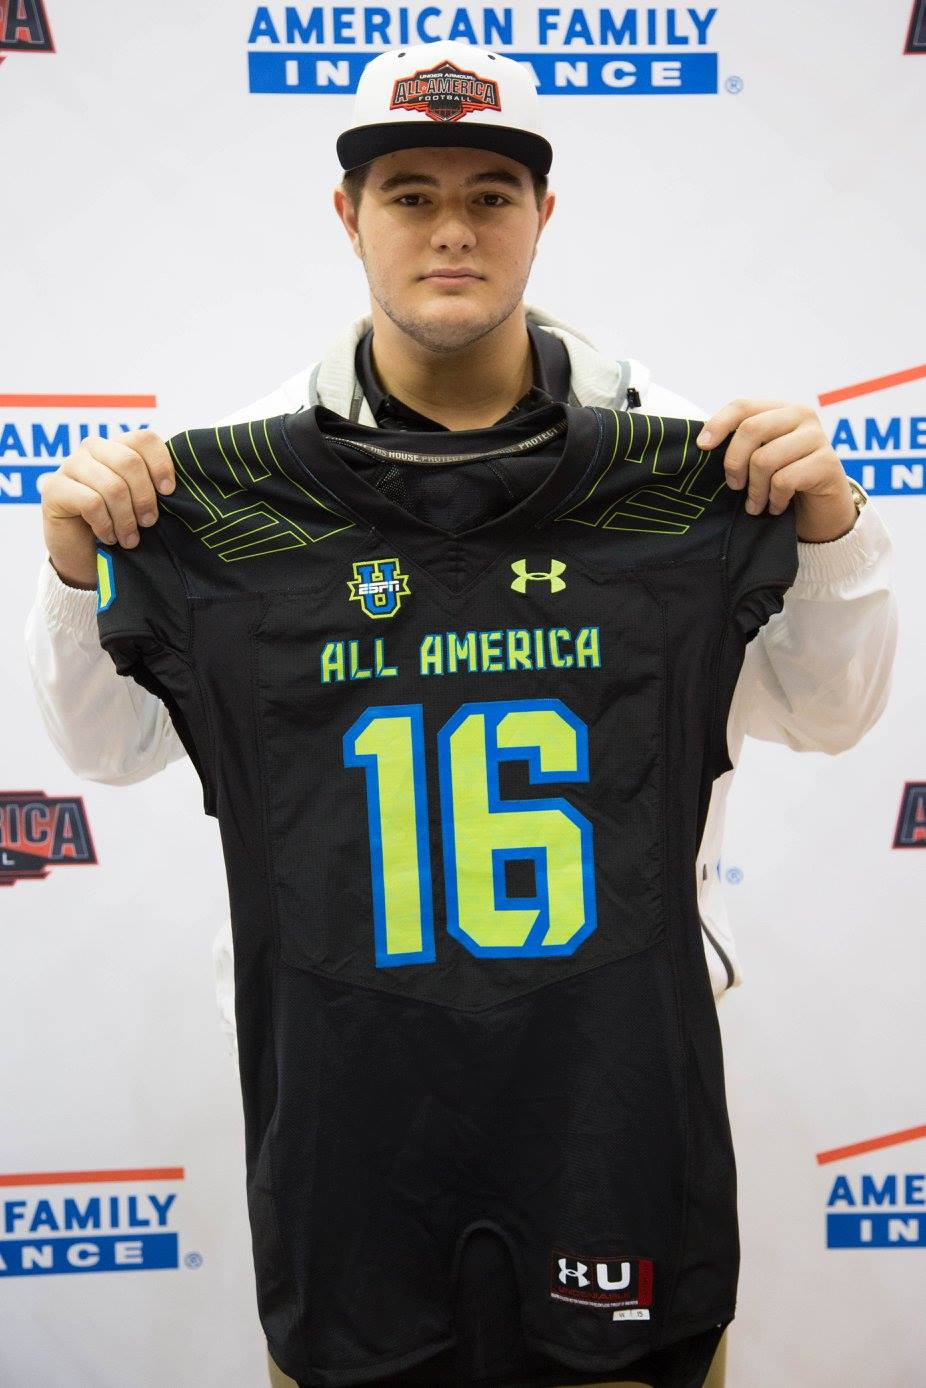 Landon Dickerson received his Under Armour All-American jersey (Photo: Intersport)